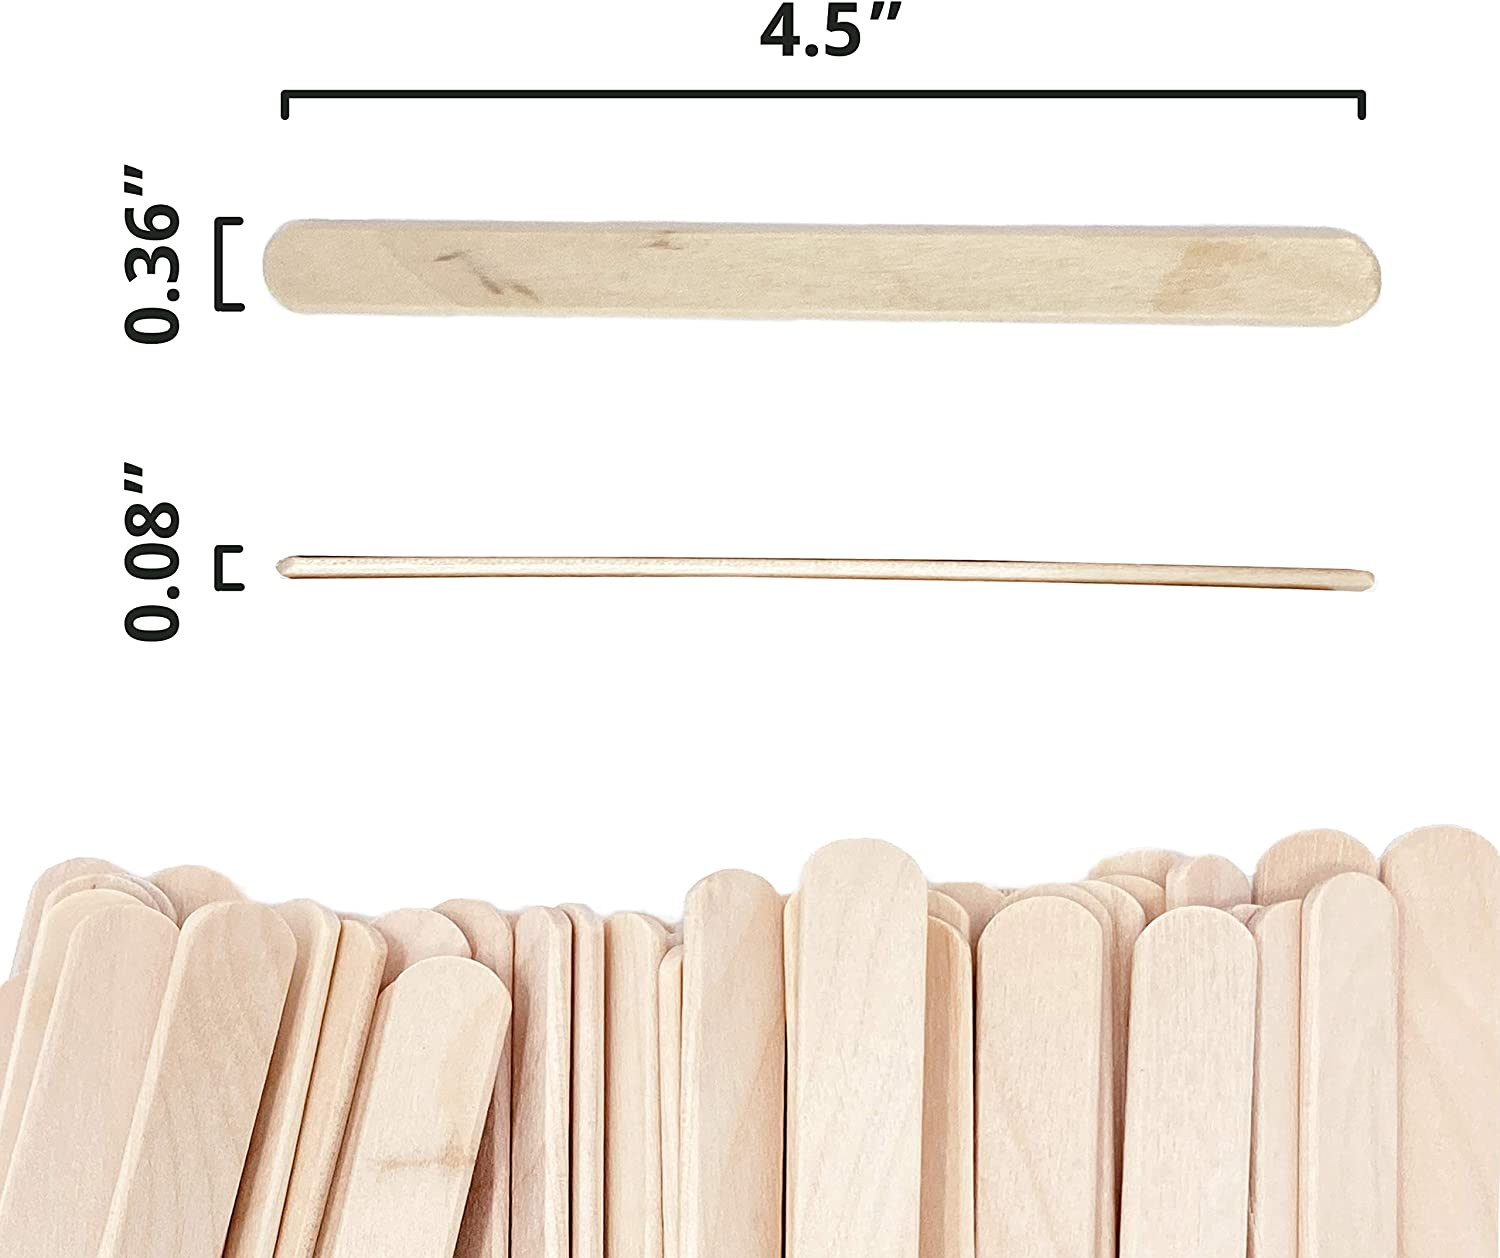 Popsicle Sticks for Crafts 4.5 Inch Wooden Sticks Smooth Epoxy Resin Stirring Splinter-Free Ice Cream Candy Making and Garden Markers Makerstep 200 Natural Wood Craft Waxing Spatulas